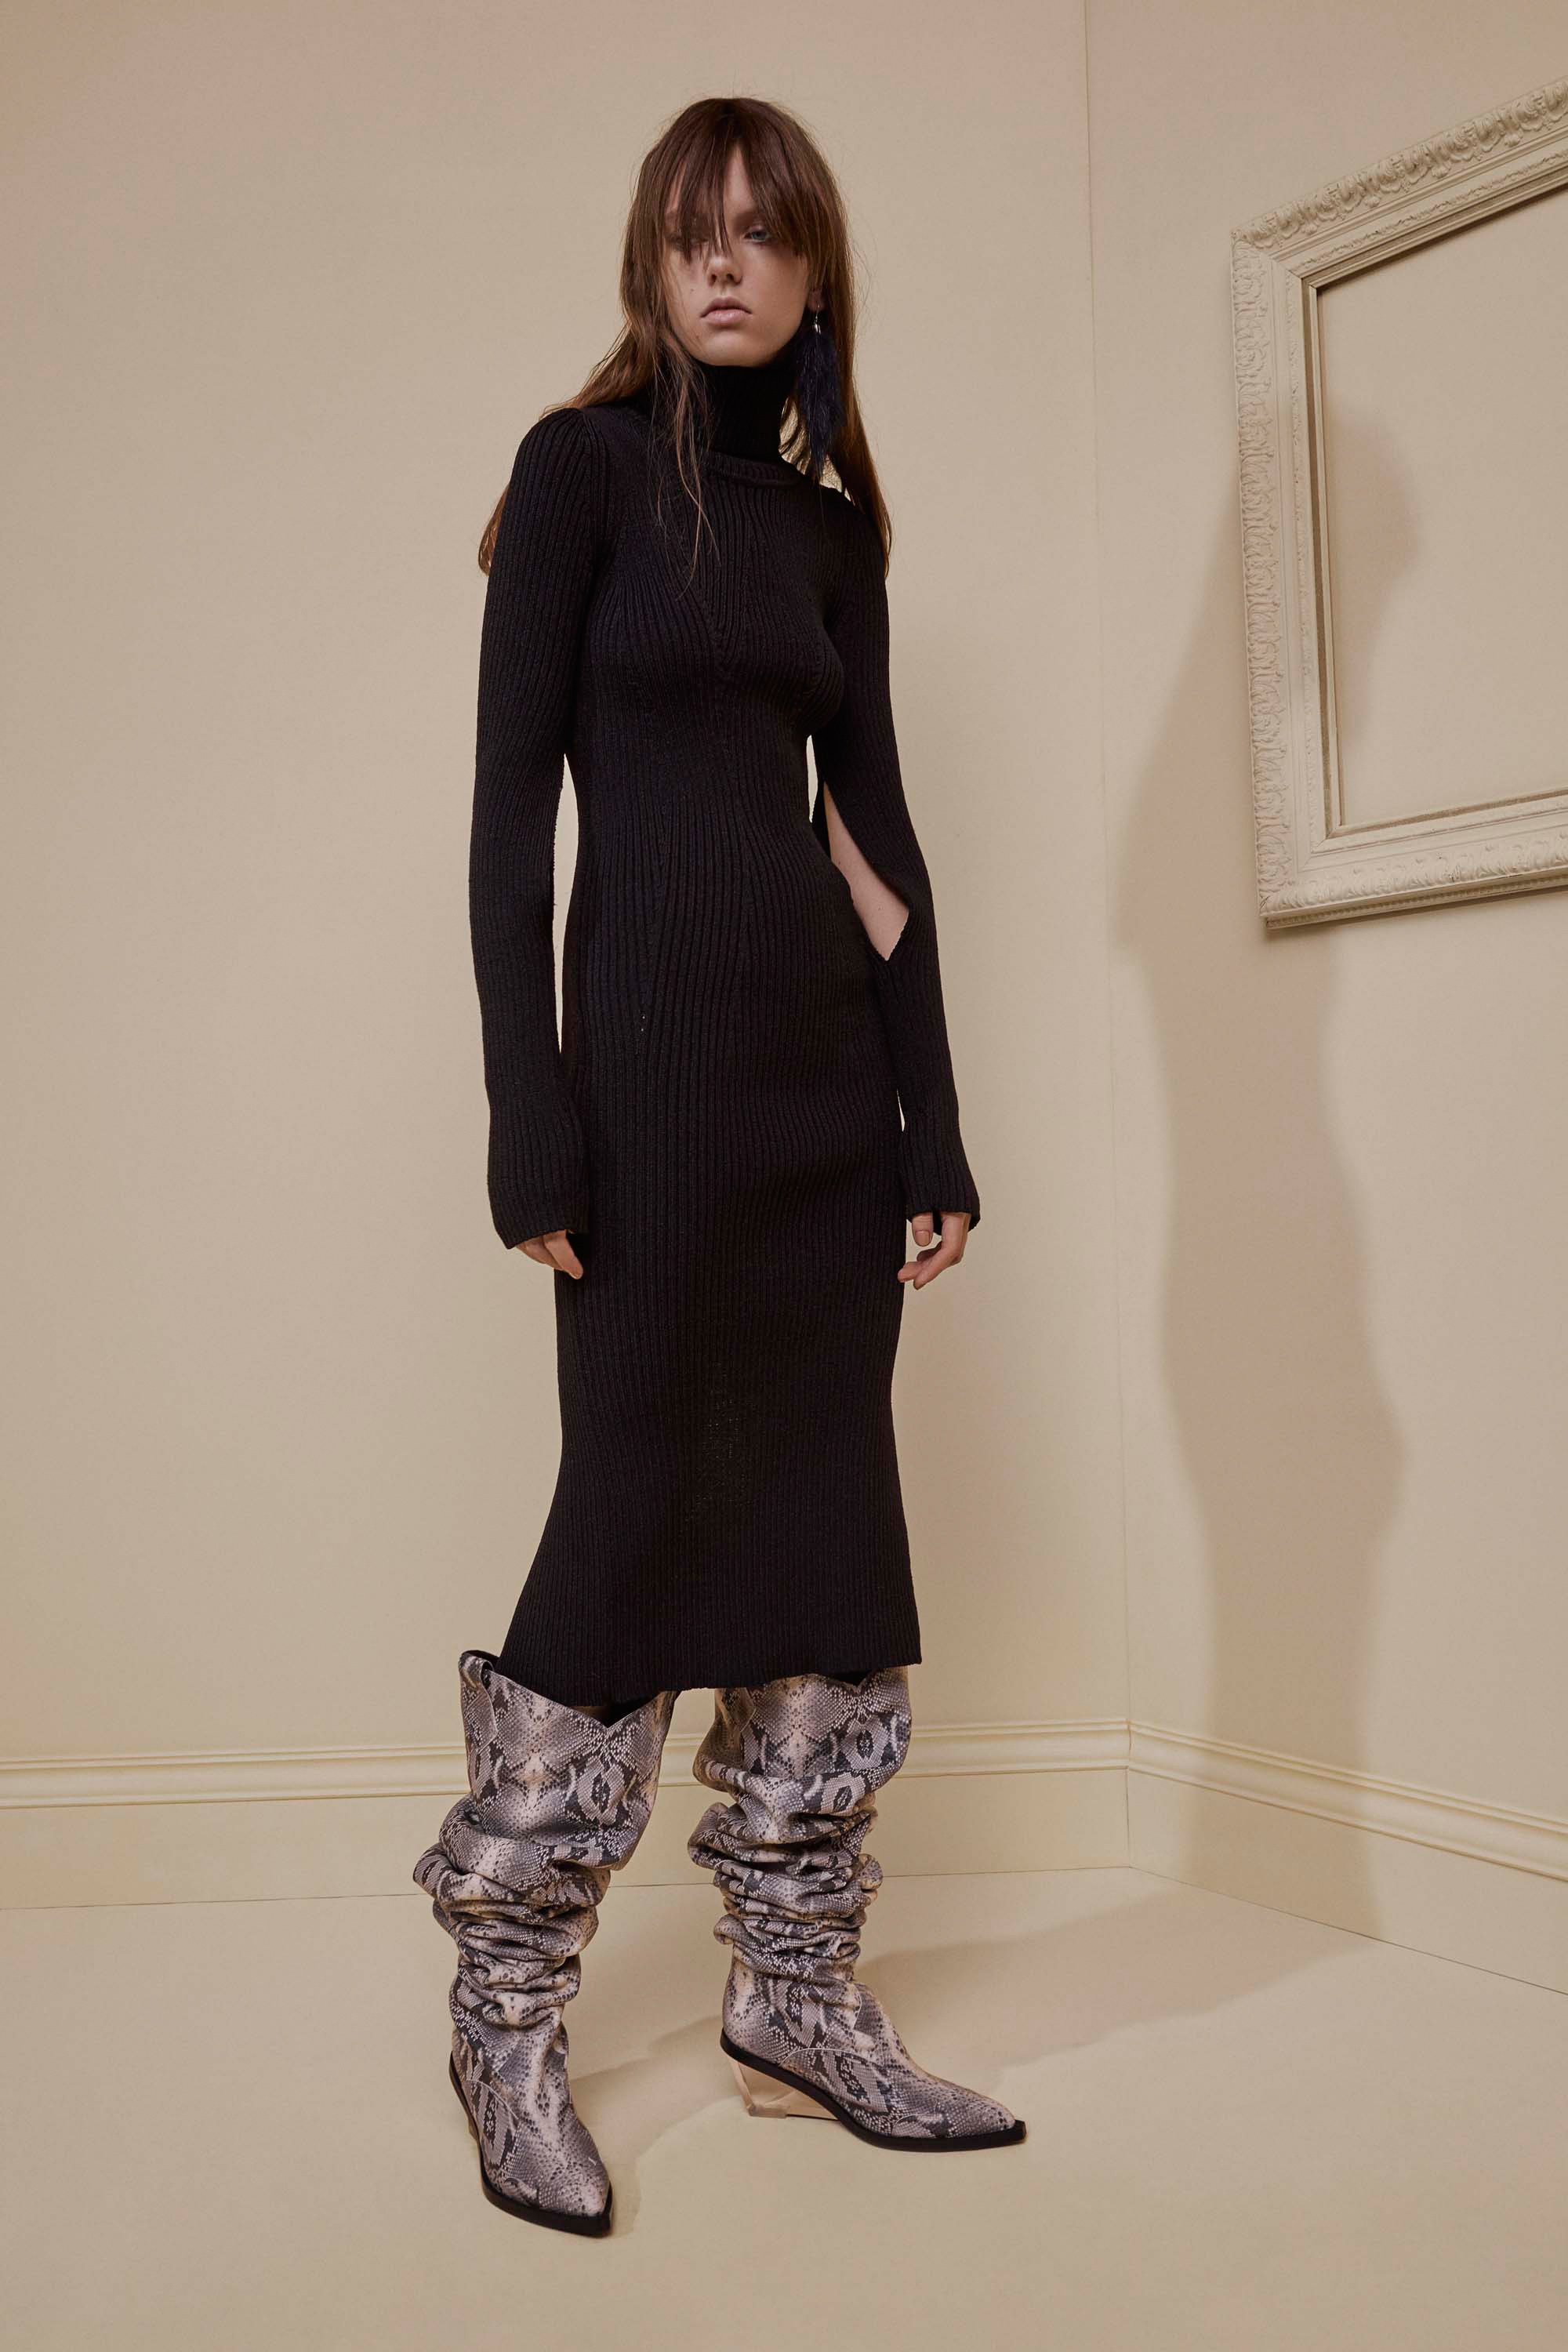 mm6-maison-margiela-pre-fall-2017-fashion-show-the-impression-11